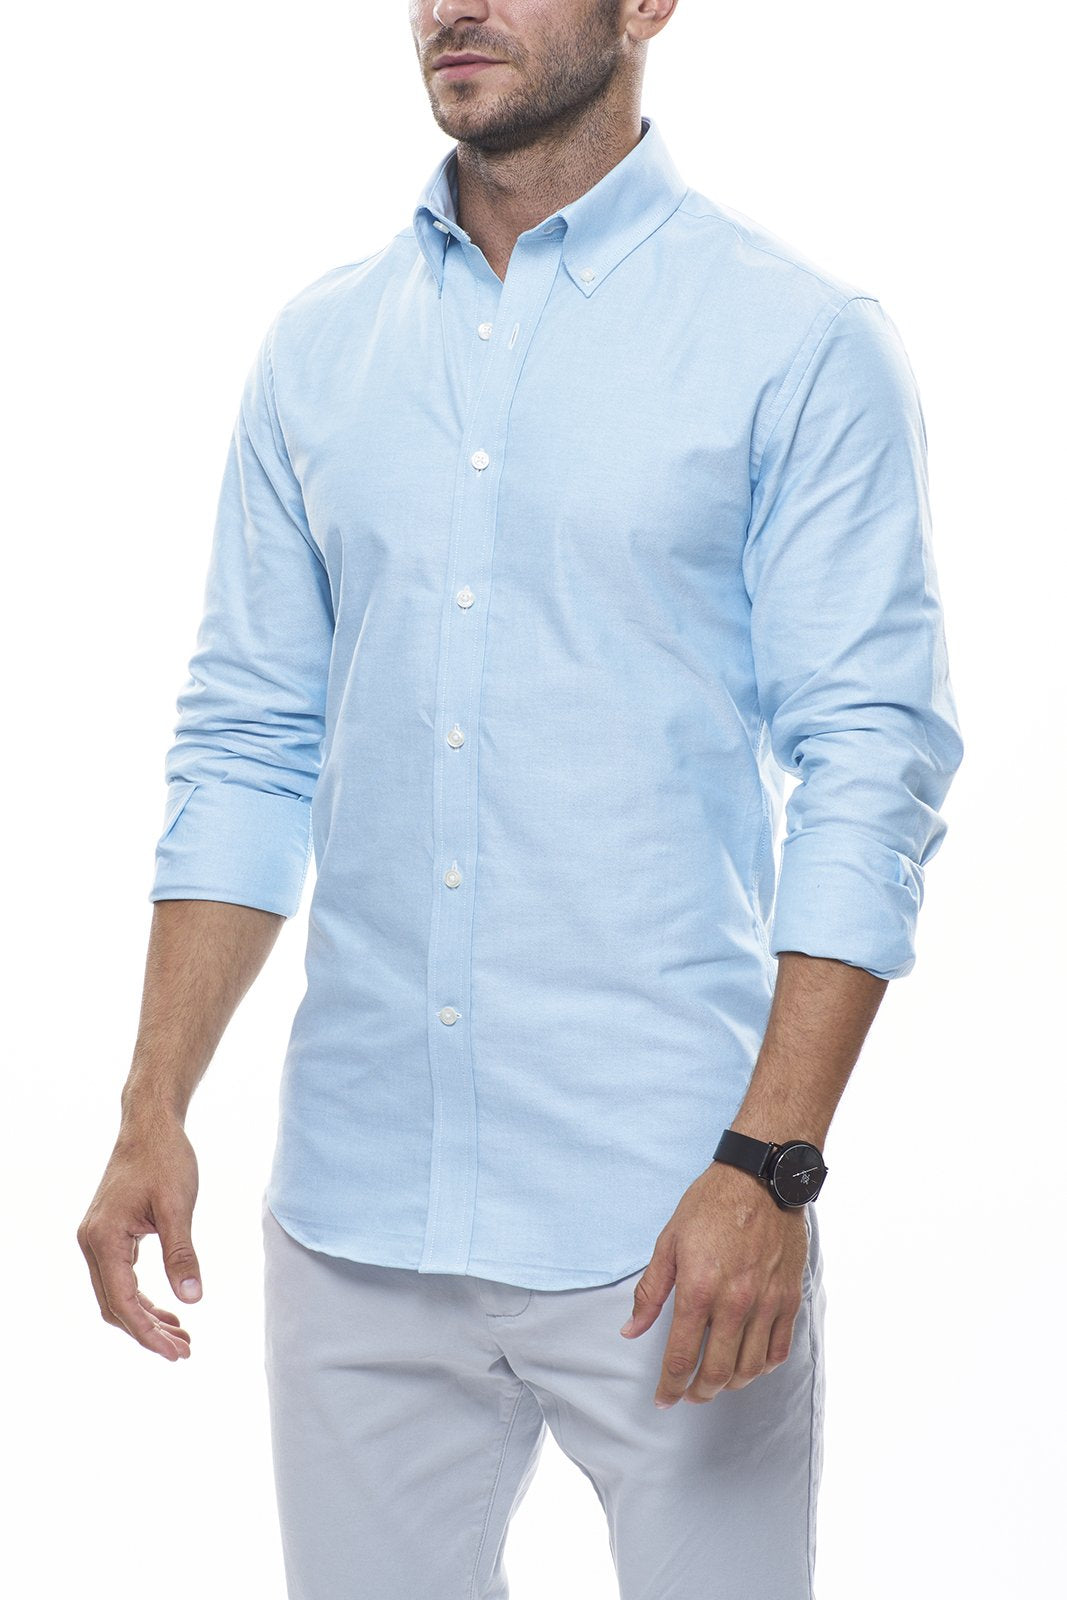 Lightweight Oxford in Teal: Modified-Spread Collar, Long Sleeve